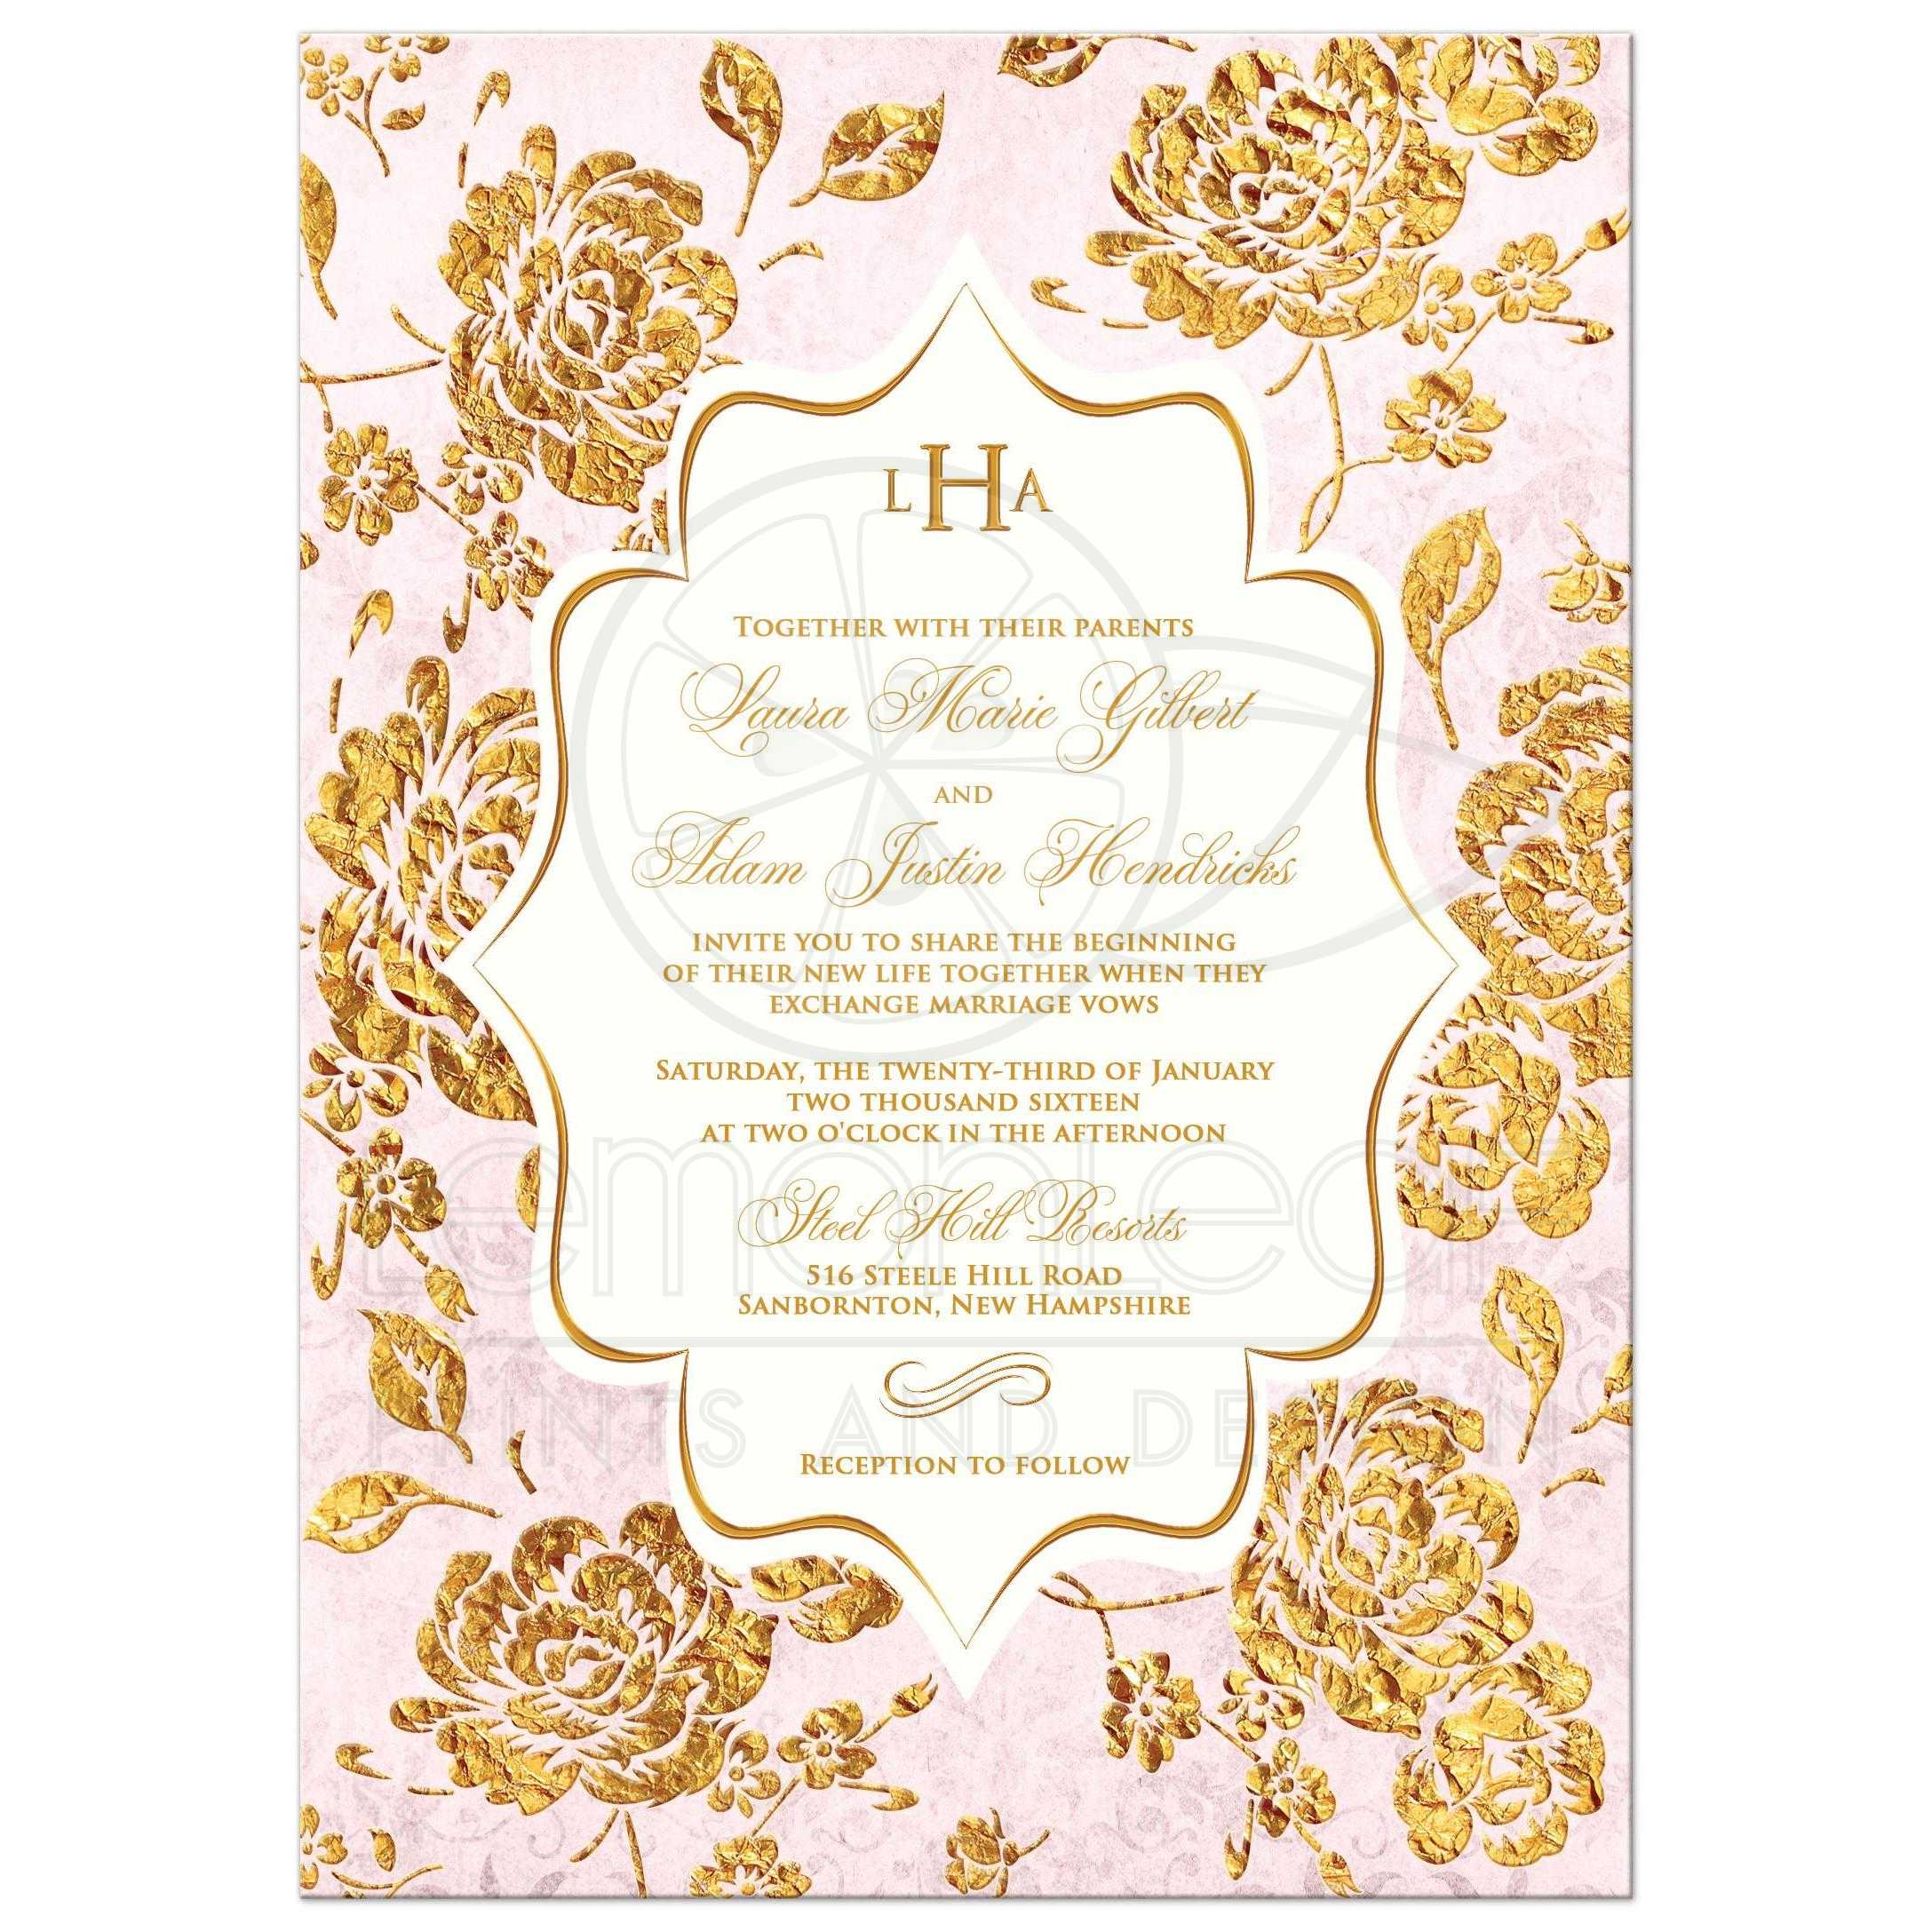 Wedding Invitation | Vintage Floral | Blush Pink, Ivory, Gold Leaf ...